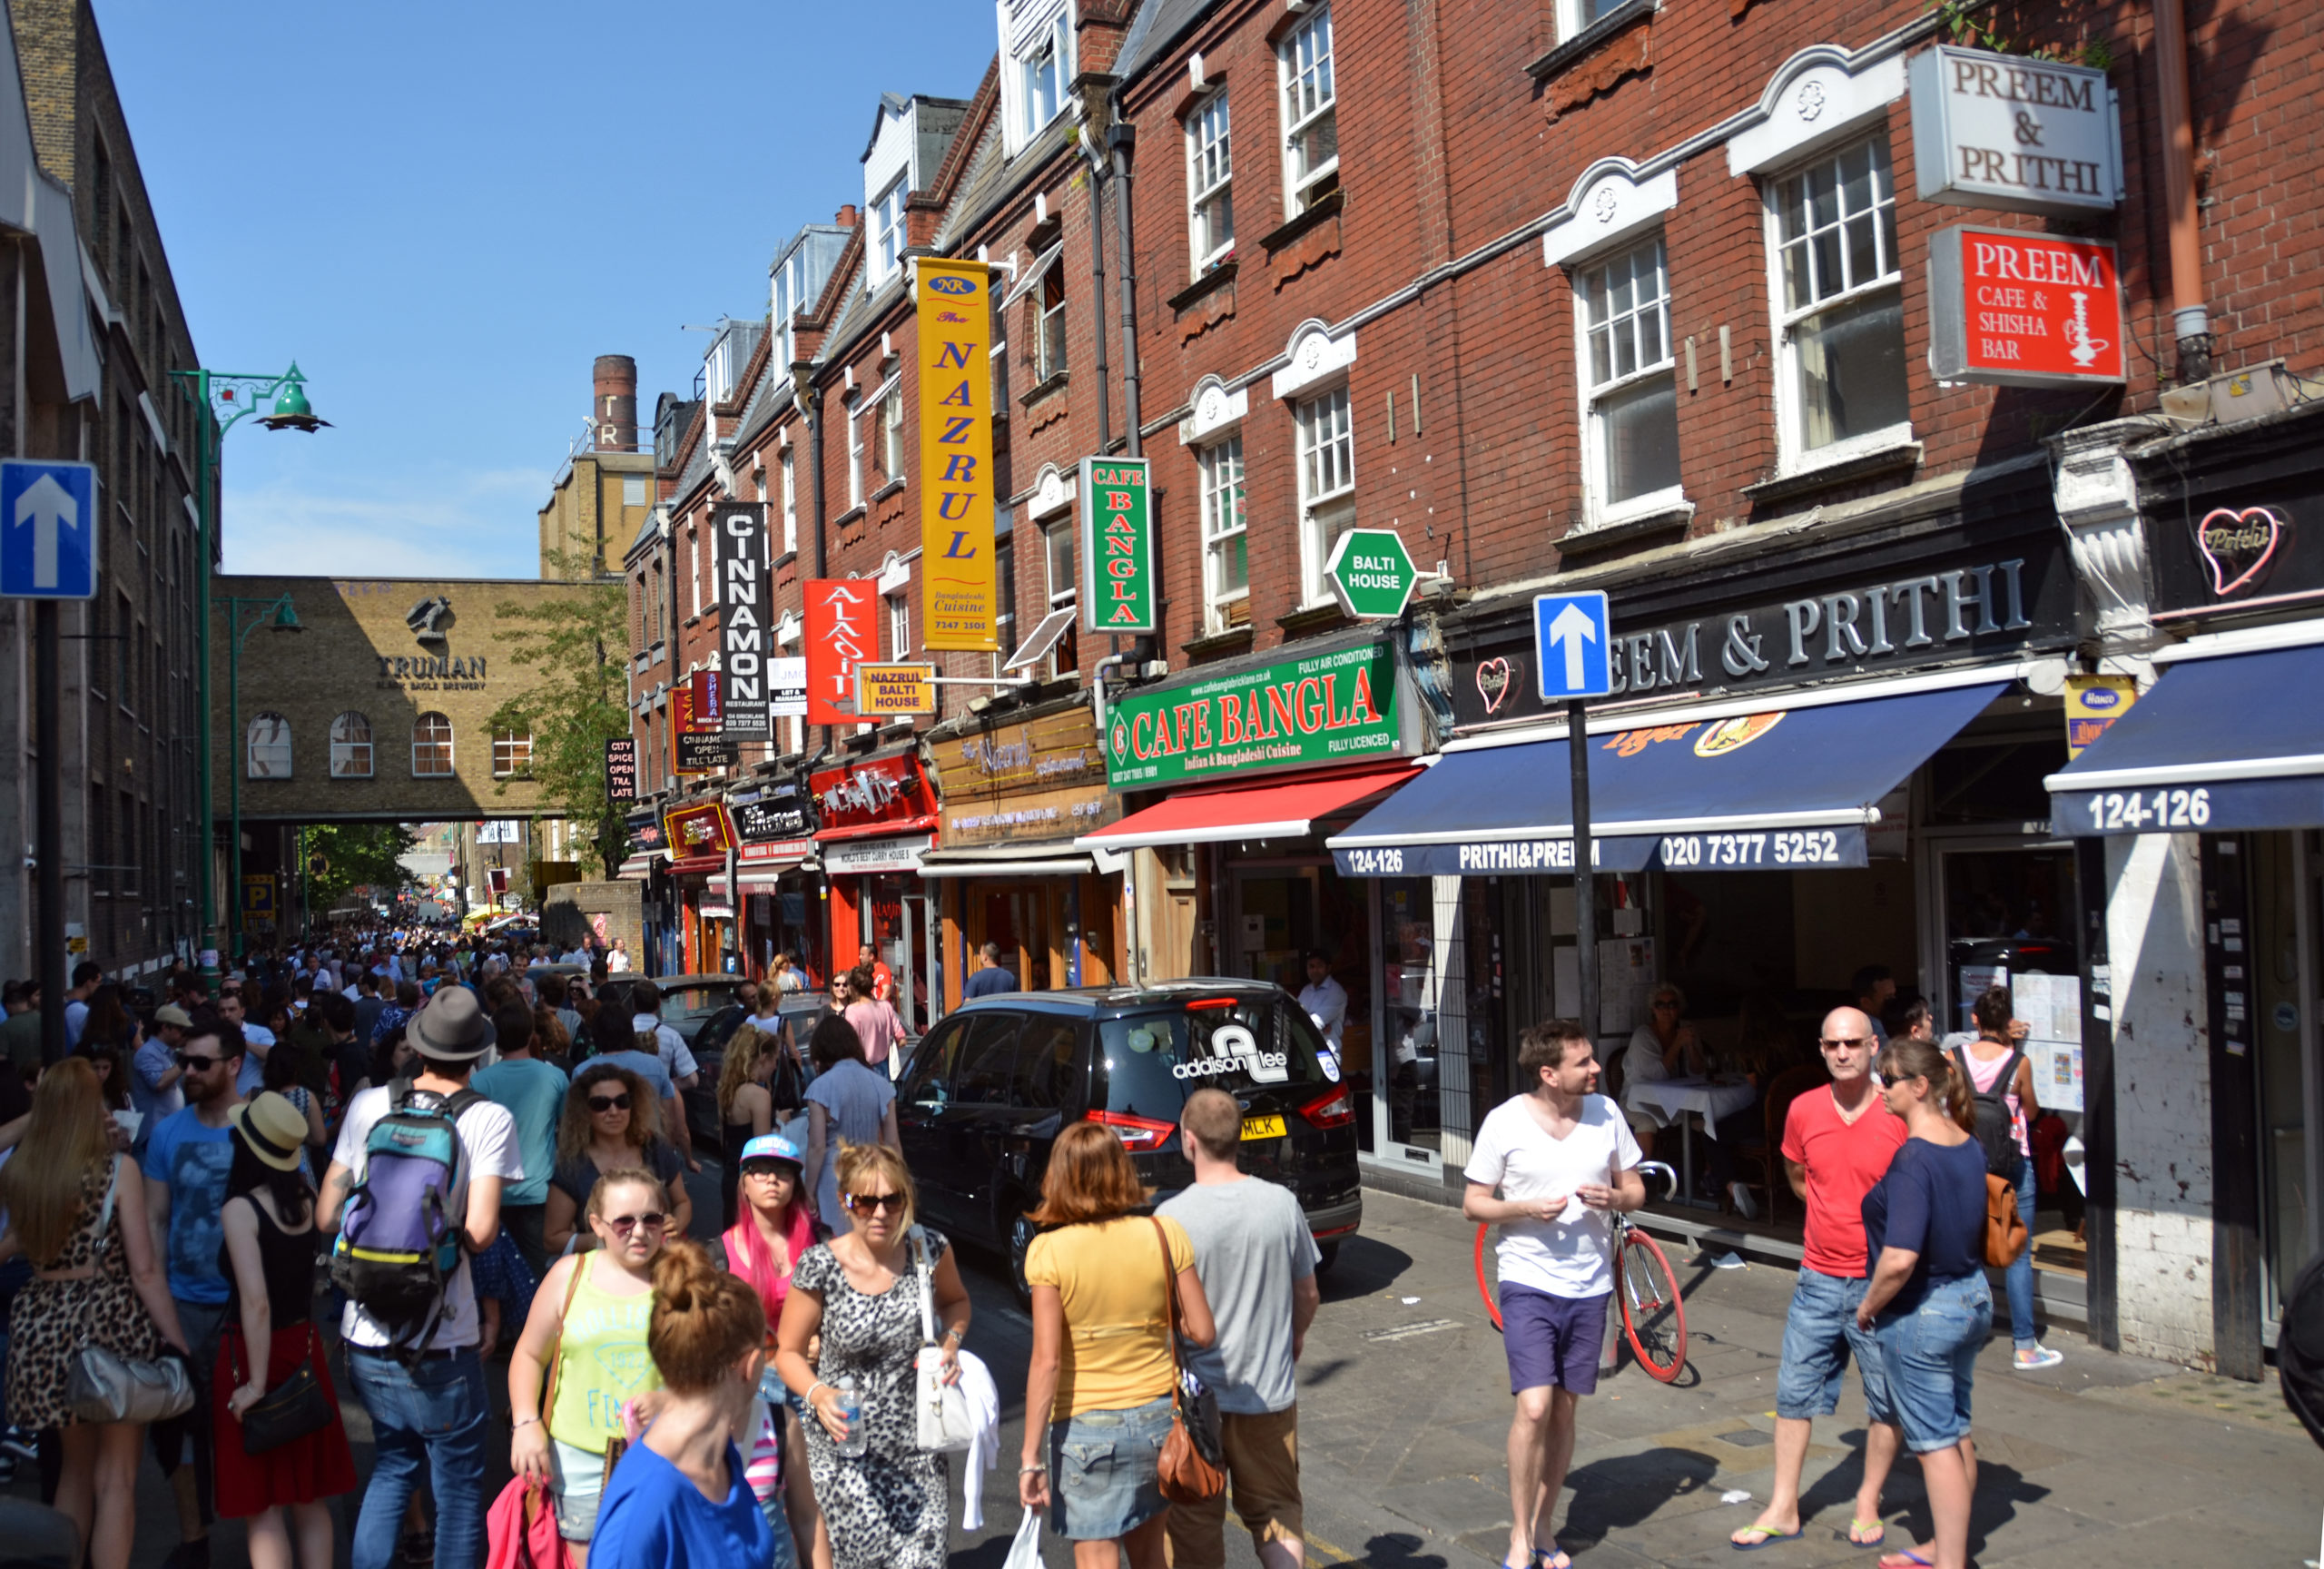 Tourists walking through Brick Lane, Tower Hamlets on a busy summers afternoon on July 21, 2013 in London